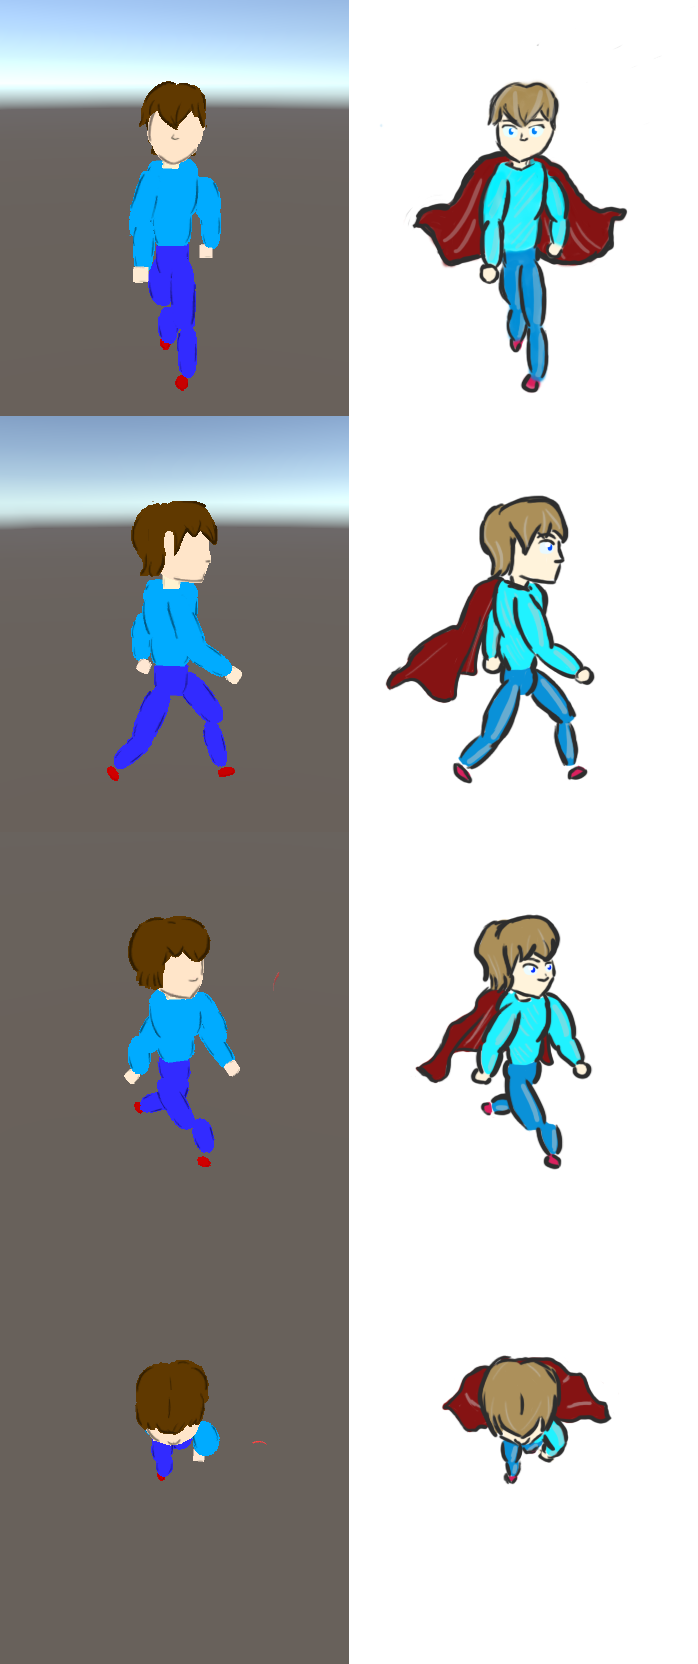 I still have hope for what the final game animation looks like.